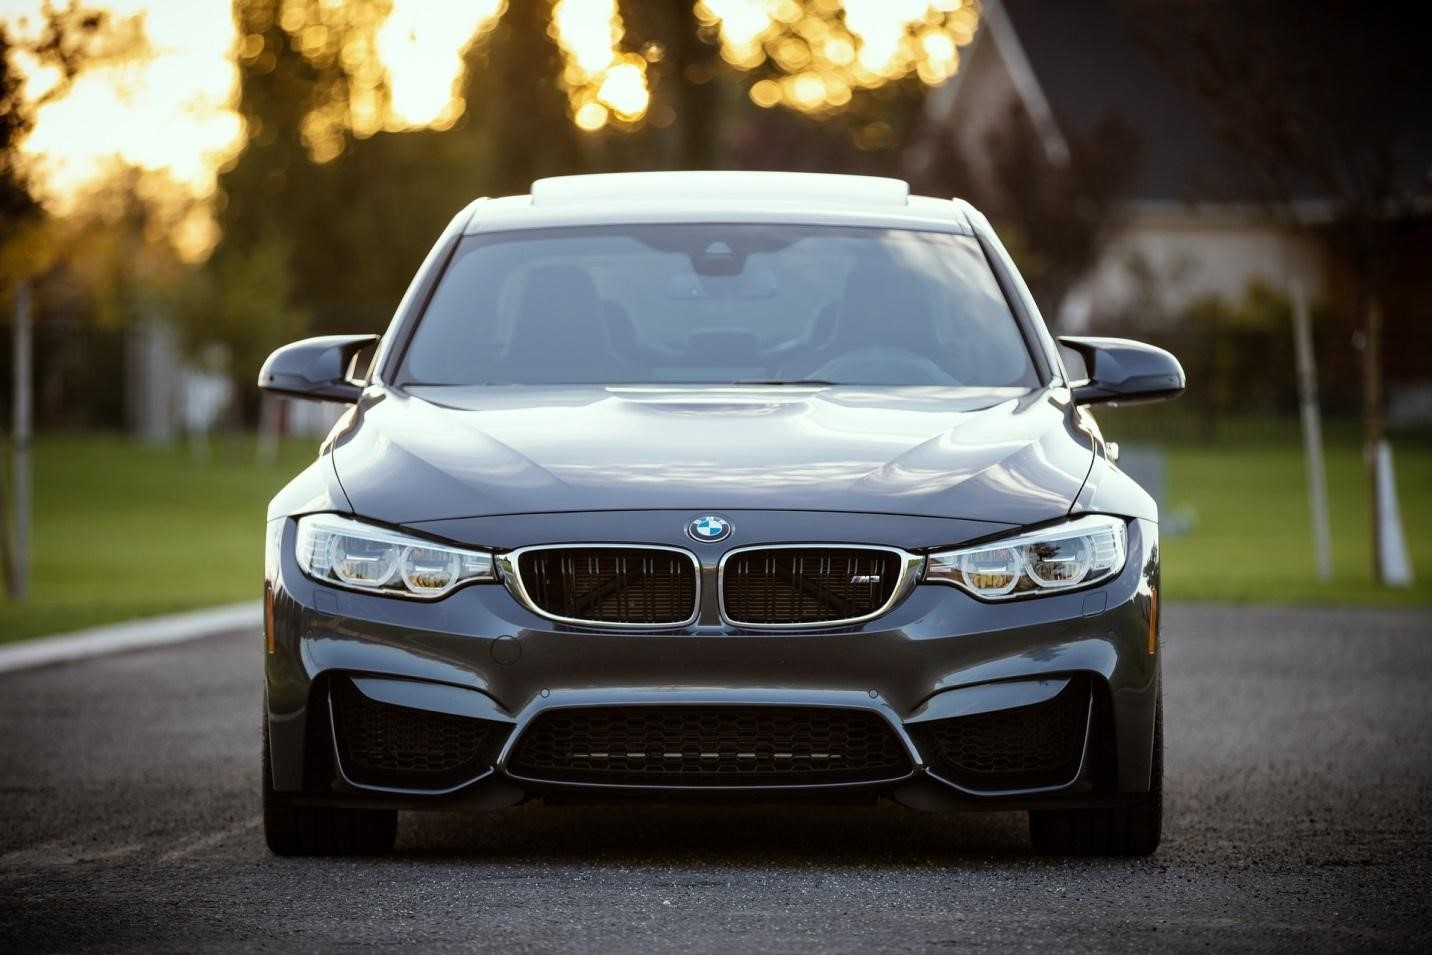 The best cars for you and your family